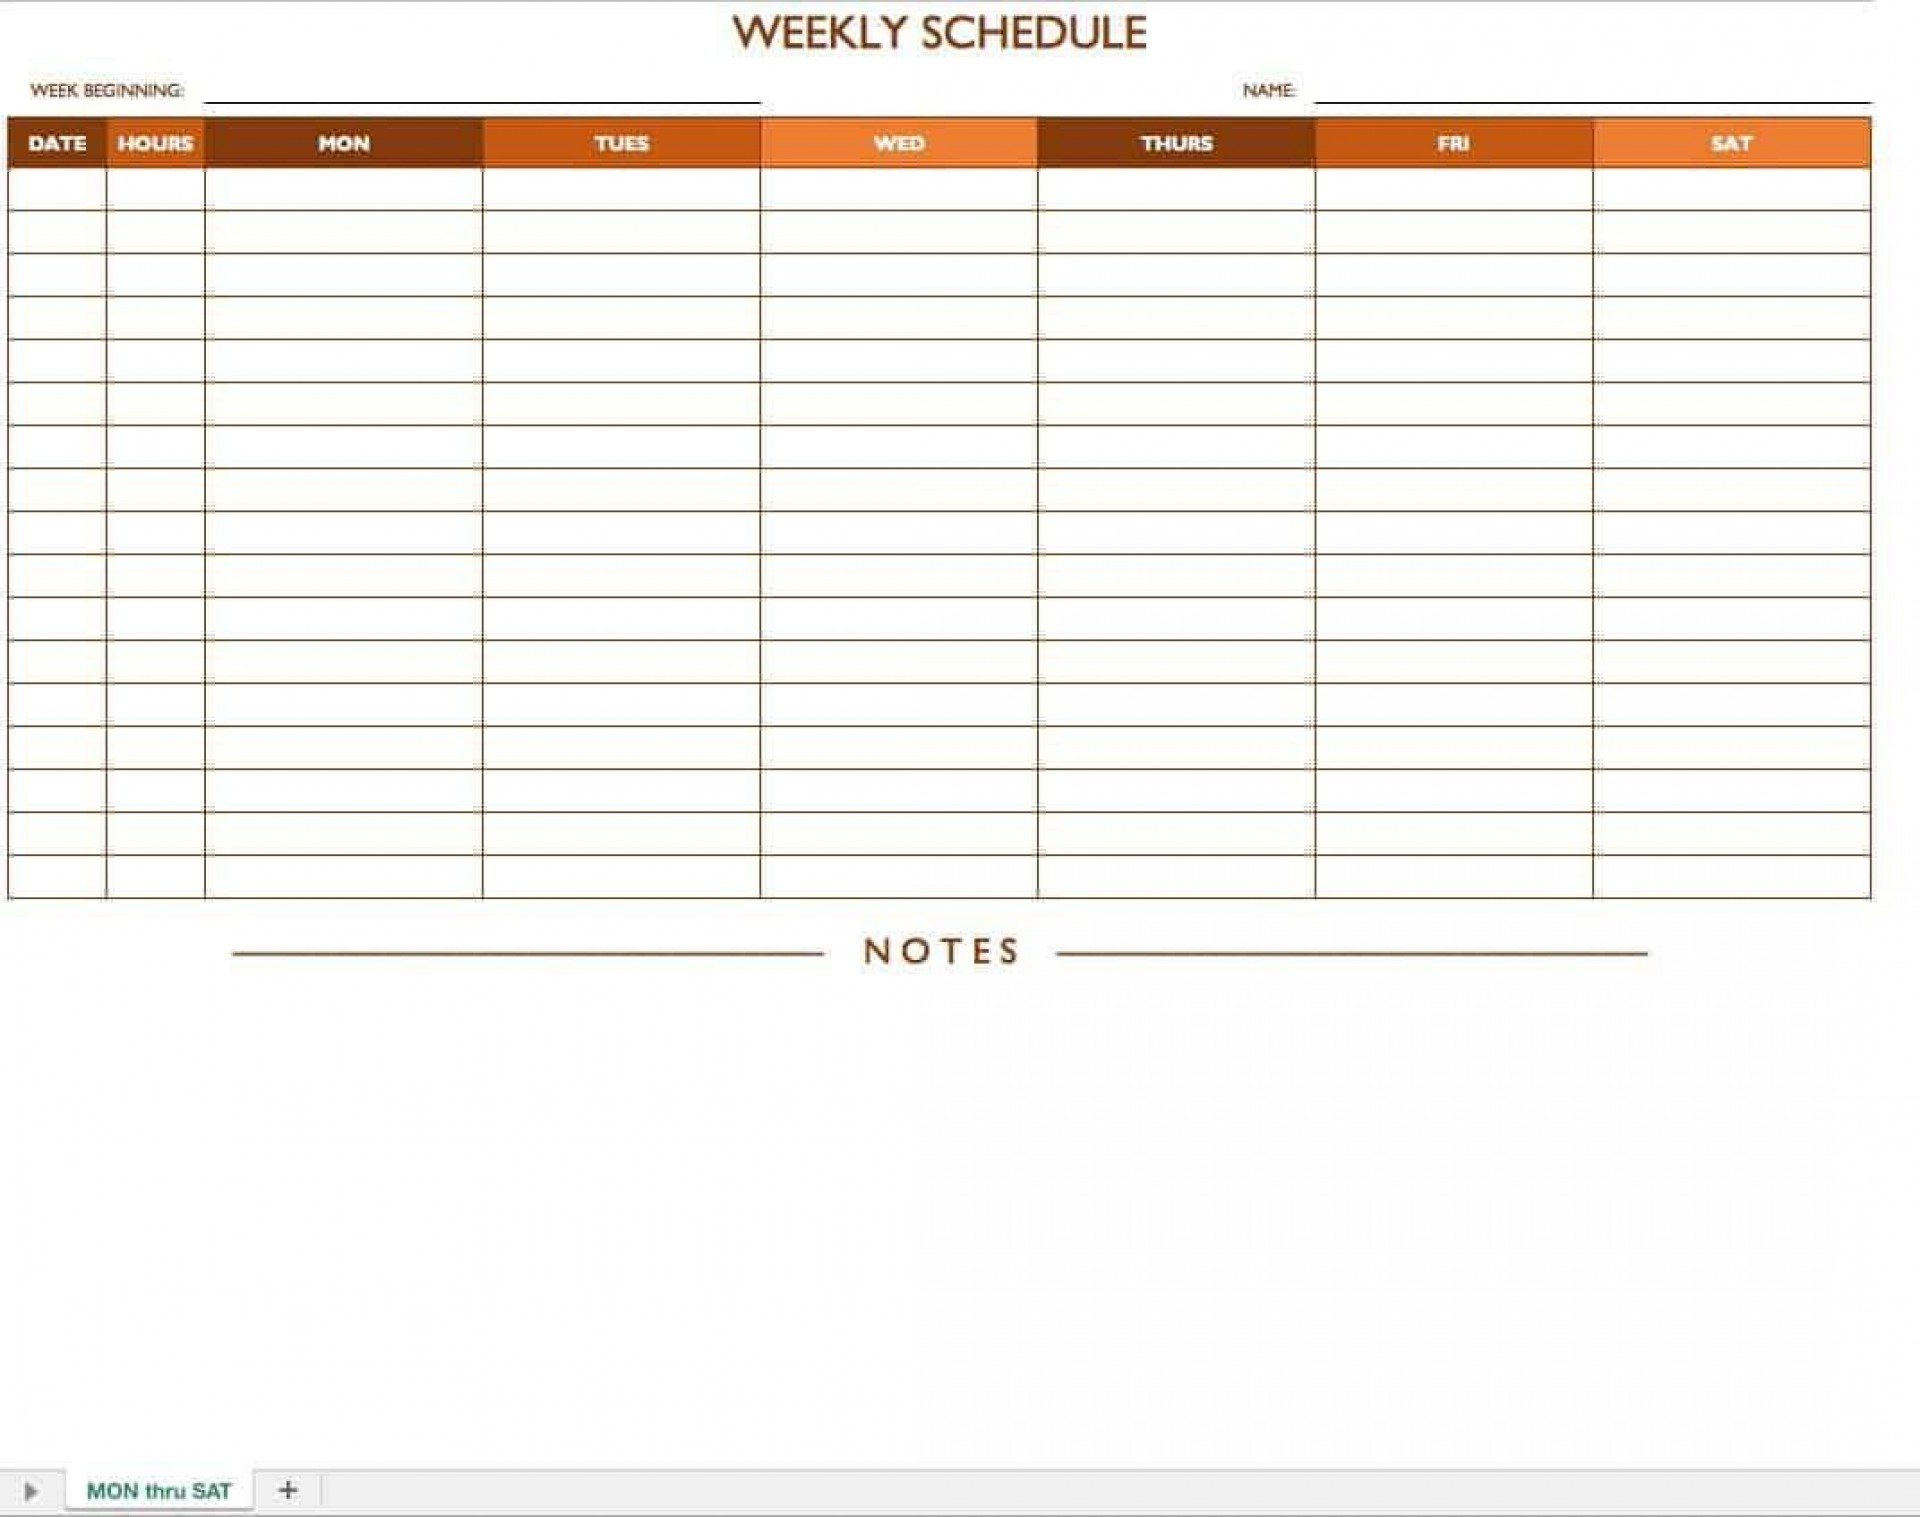 007 Magnificent Free Employee Scheduling Template Highest Quality  Templates Weekly Work Schedule Printable Training Plan Excel1920